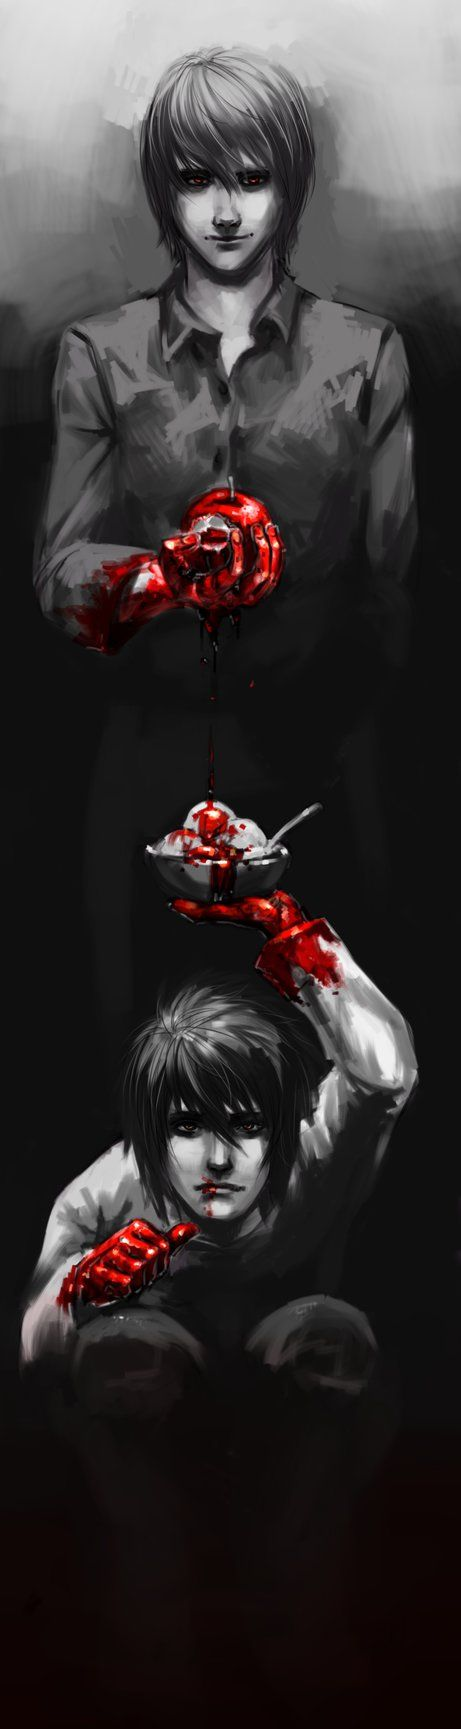 Death Note: Blood On Our Hands by swift-winged-soul on DeviantArt